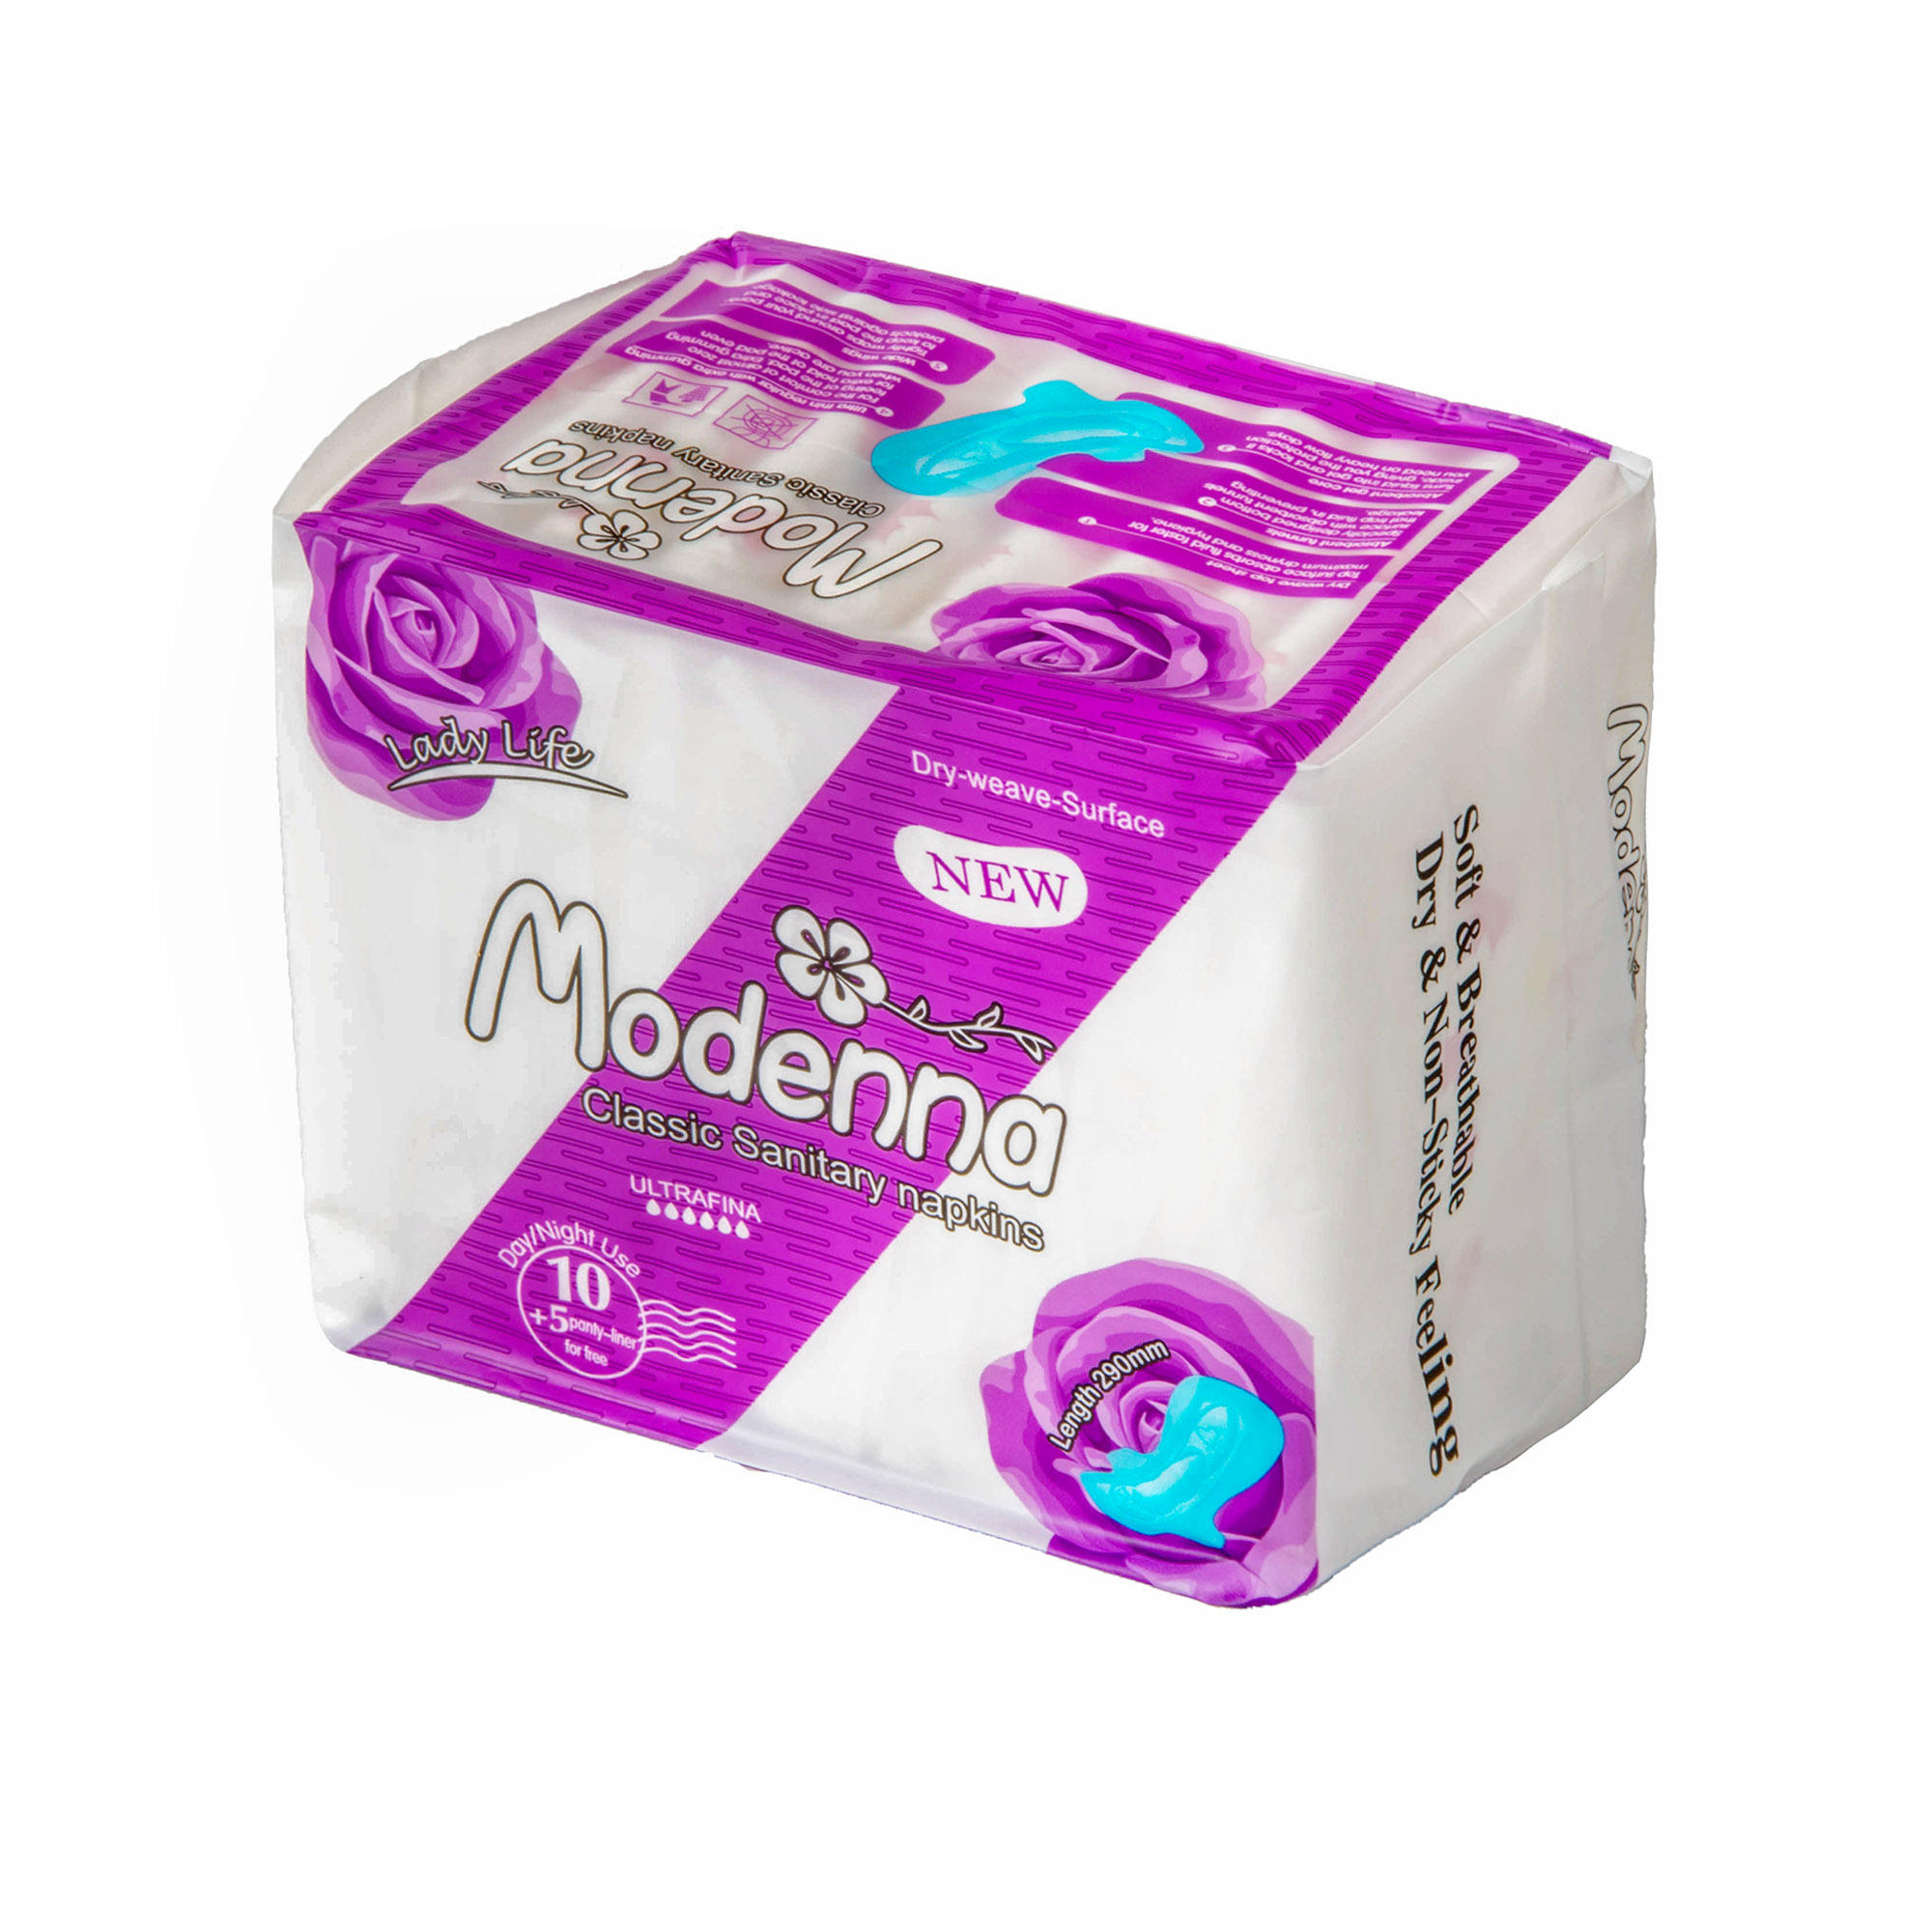 Hot selling factory brand Modenna angels secret womens pads sanitary napkin